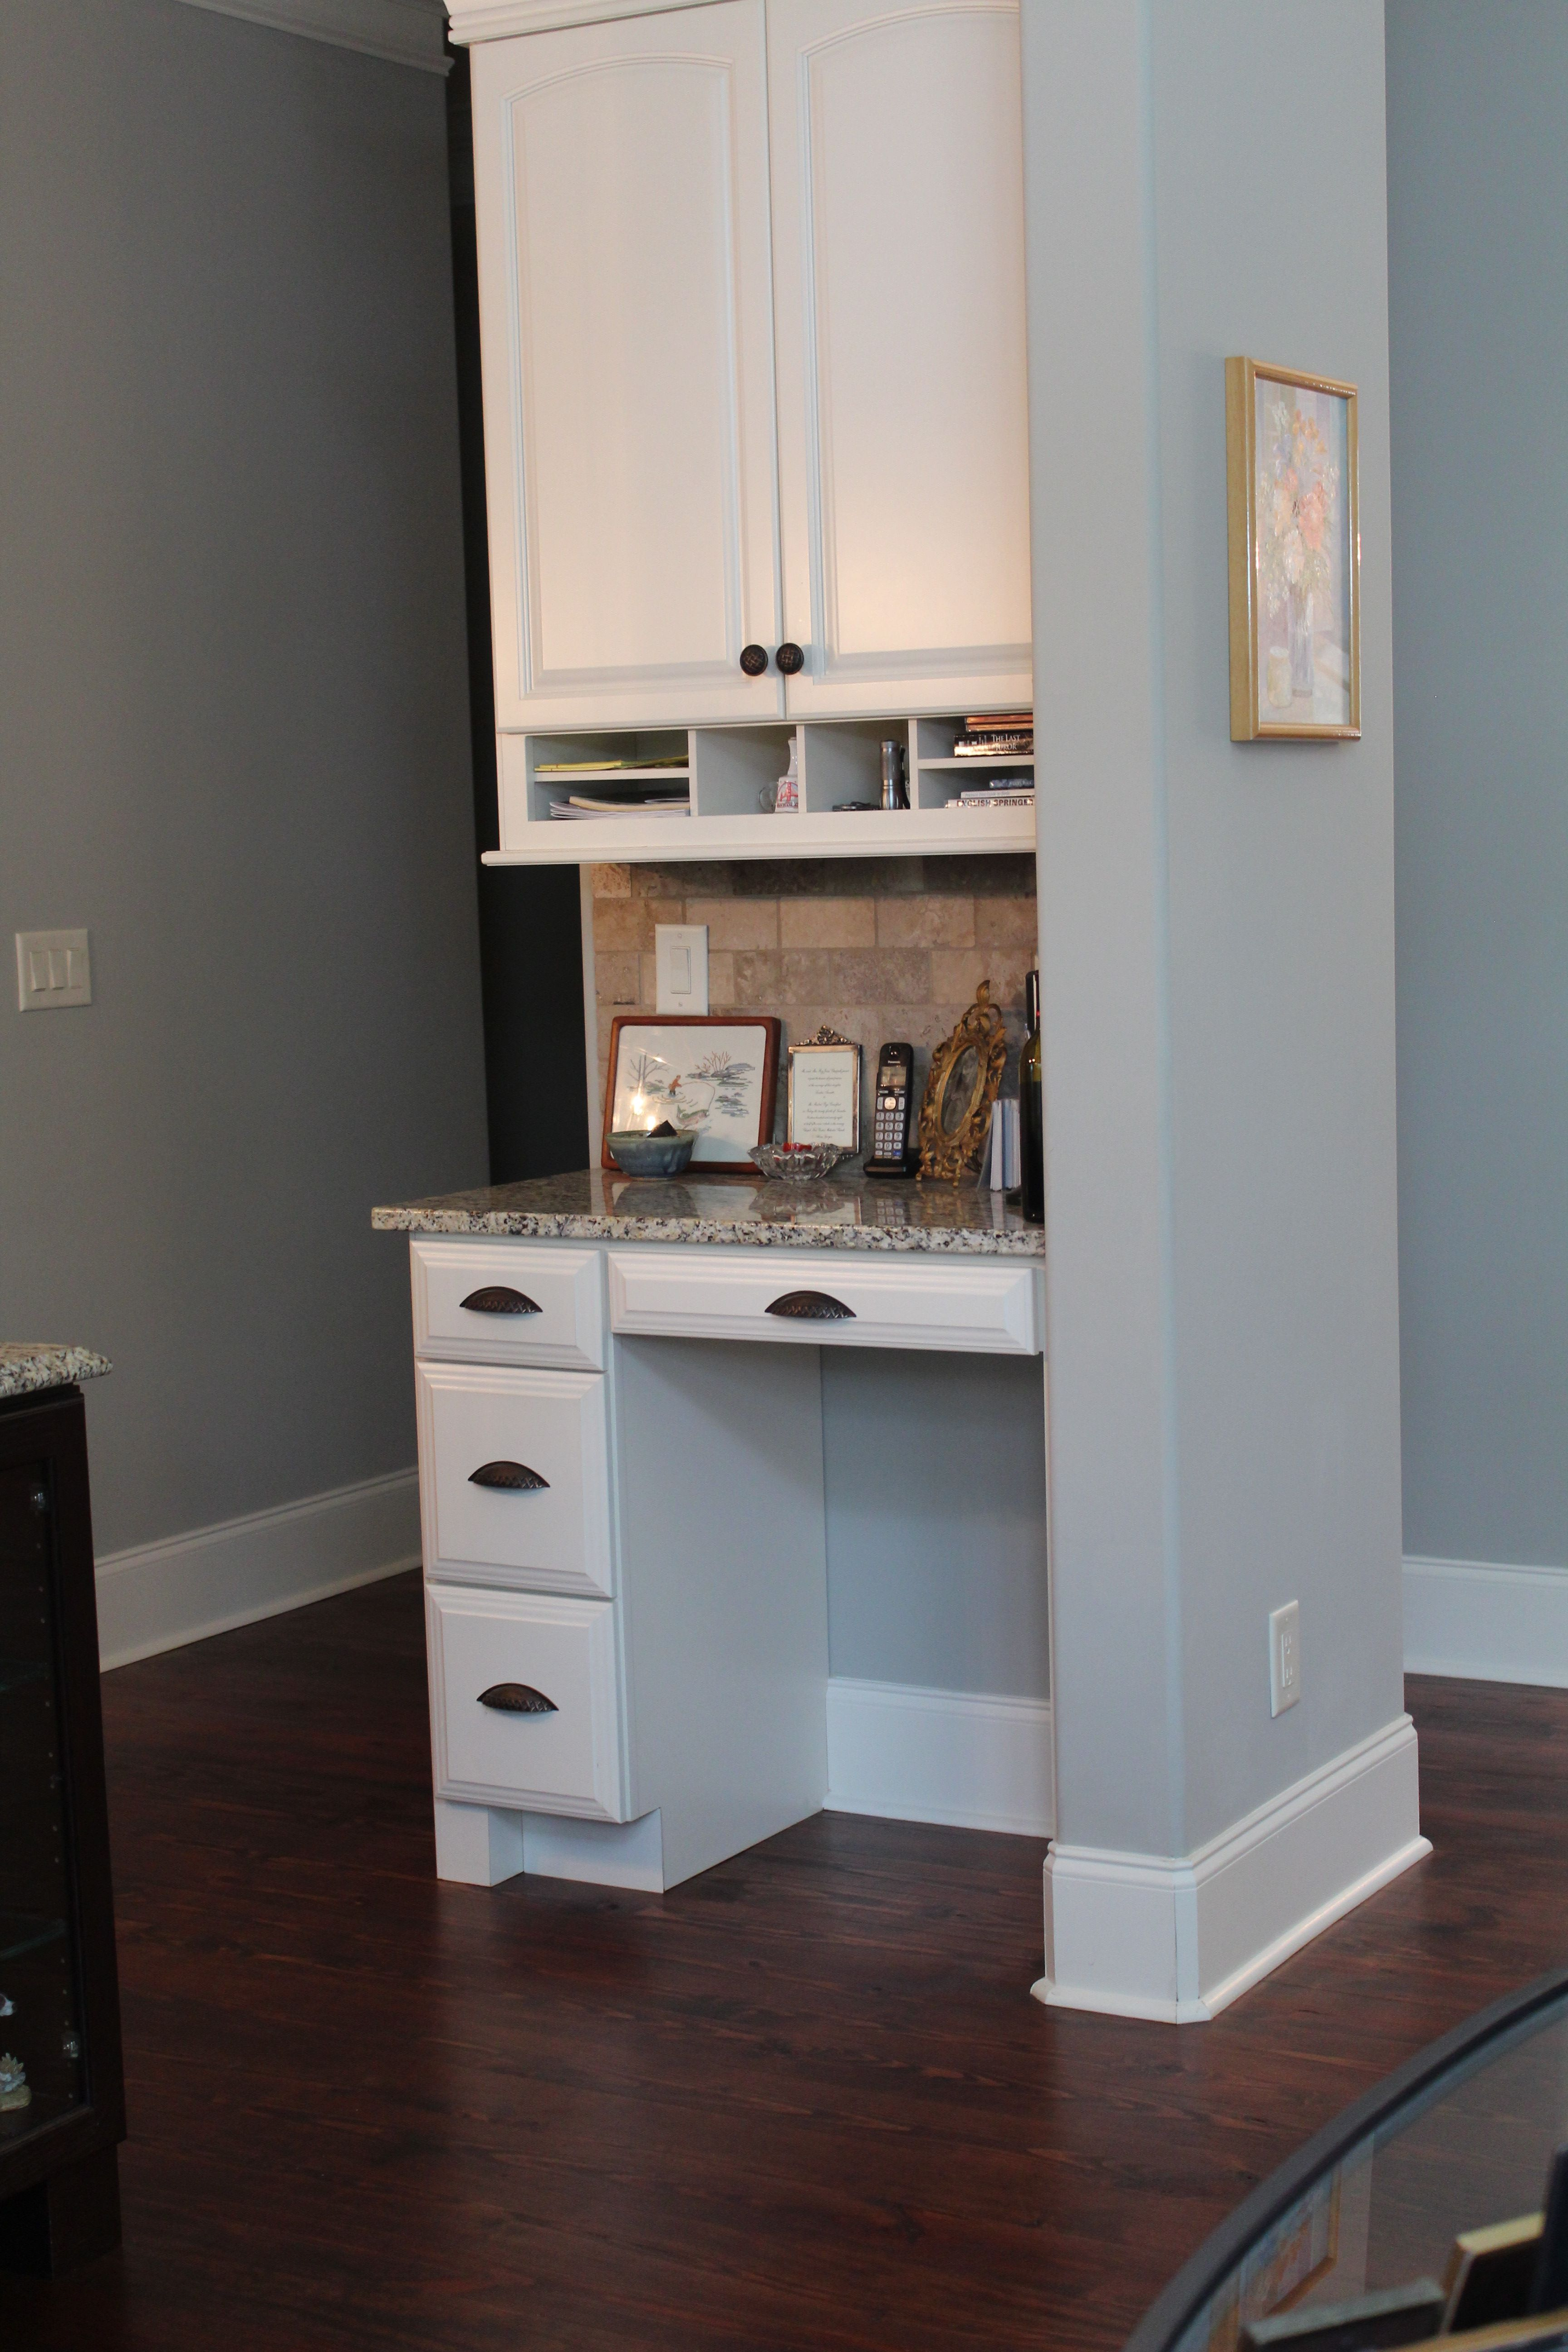 A Built In Desk Is A Great Use Of Space White Cabinets And A Granite Top Make It Match The Kitchen Built In Desk Built In Shelves Built Ins